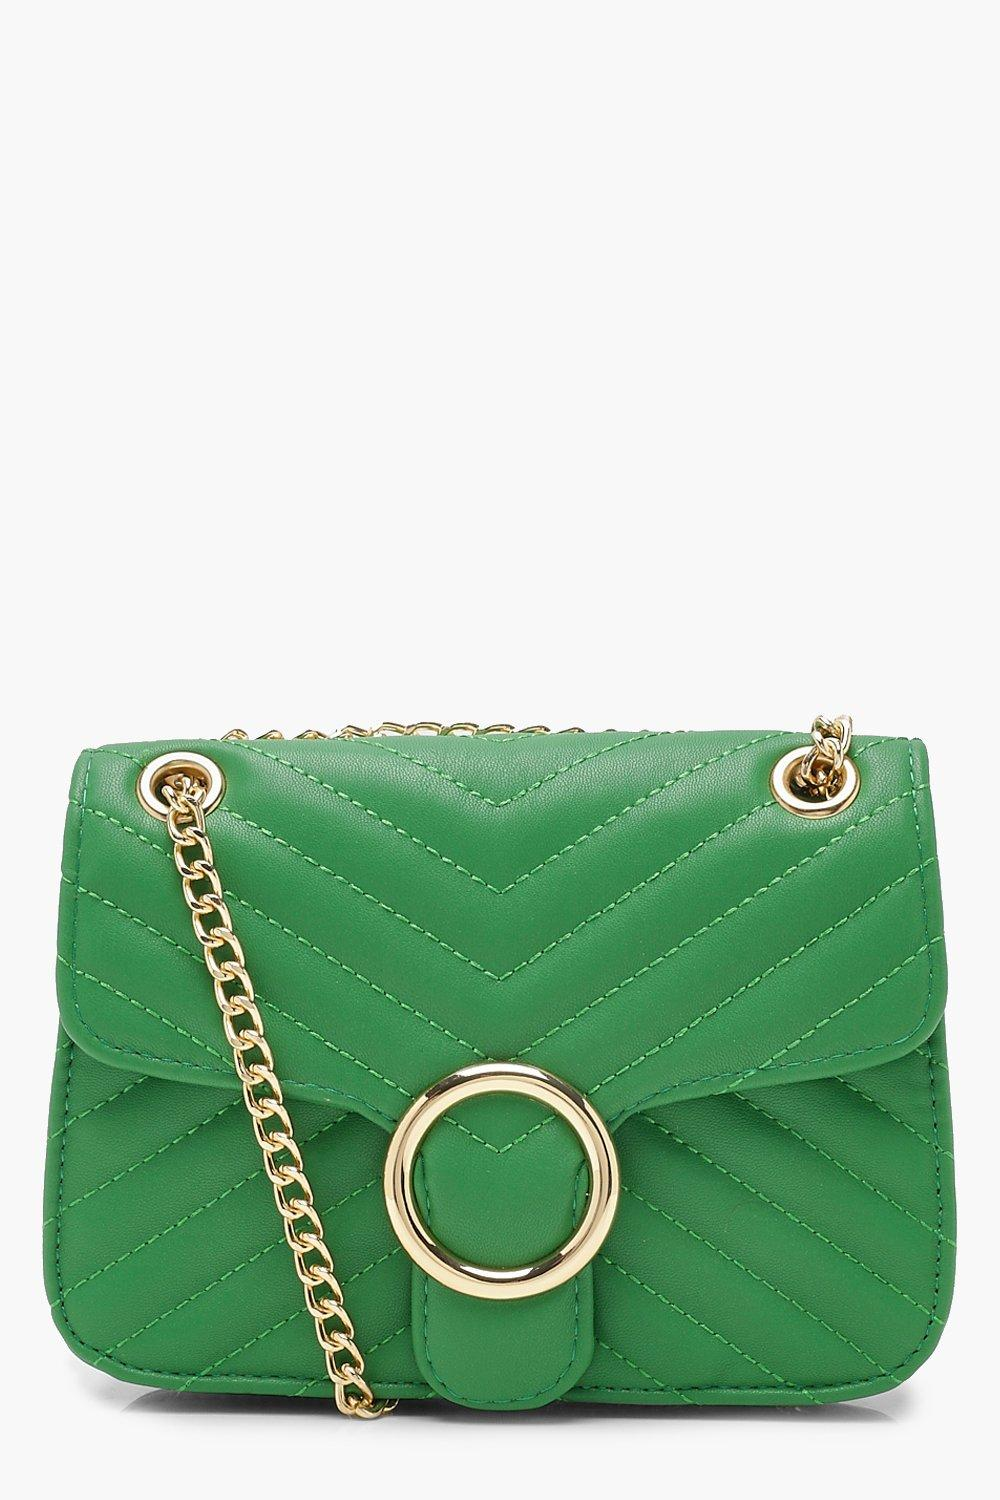 NEW-Boohoo-Womens-Quilt-amp-Ring-Detail-Cross-Body-in